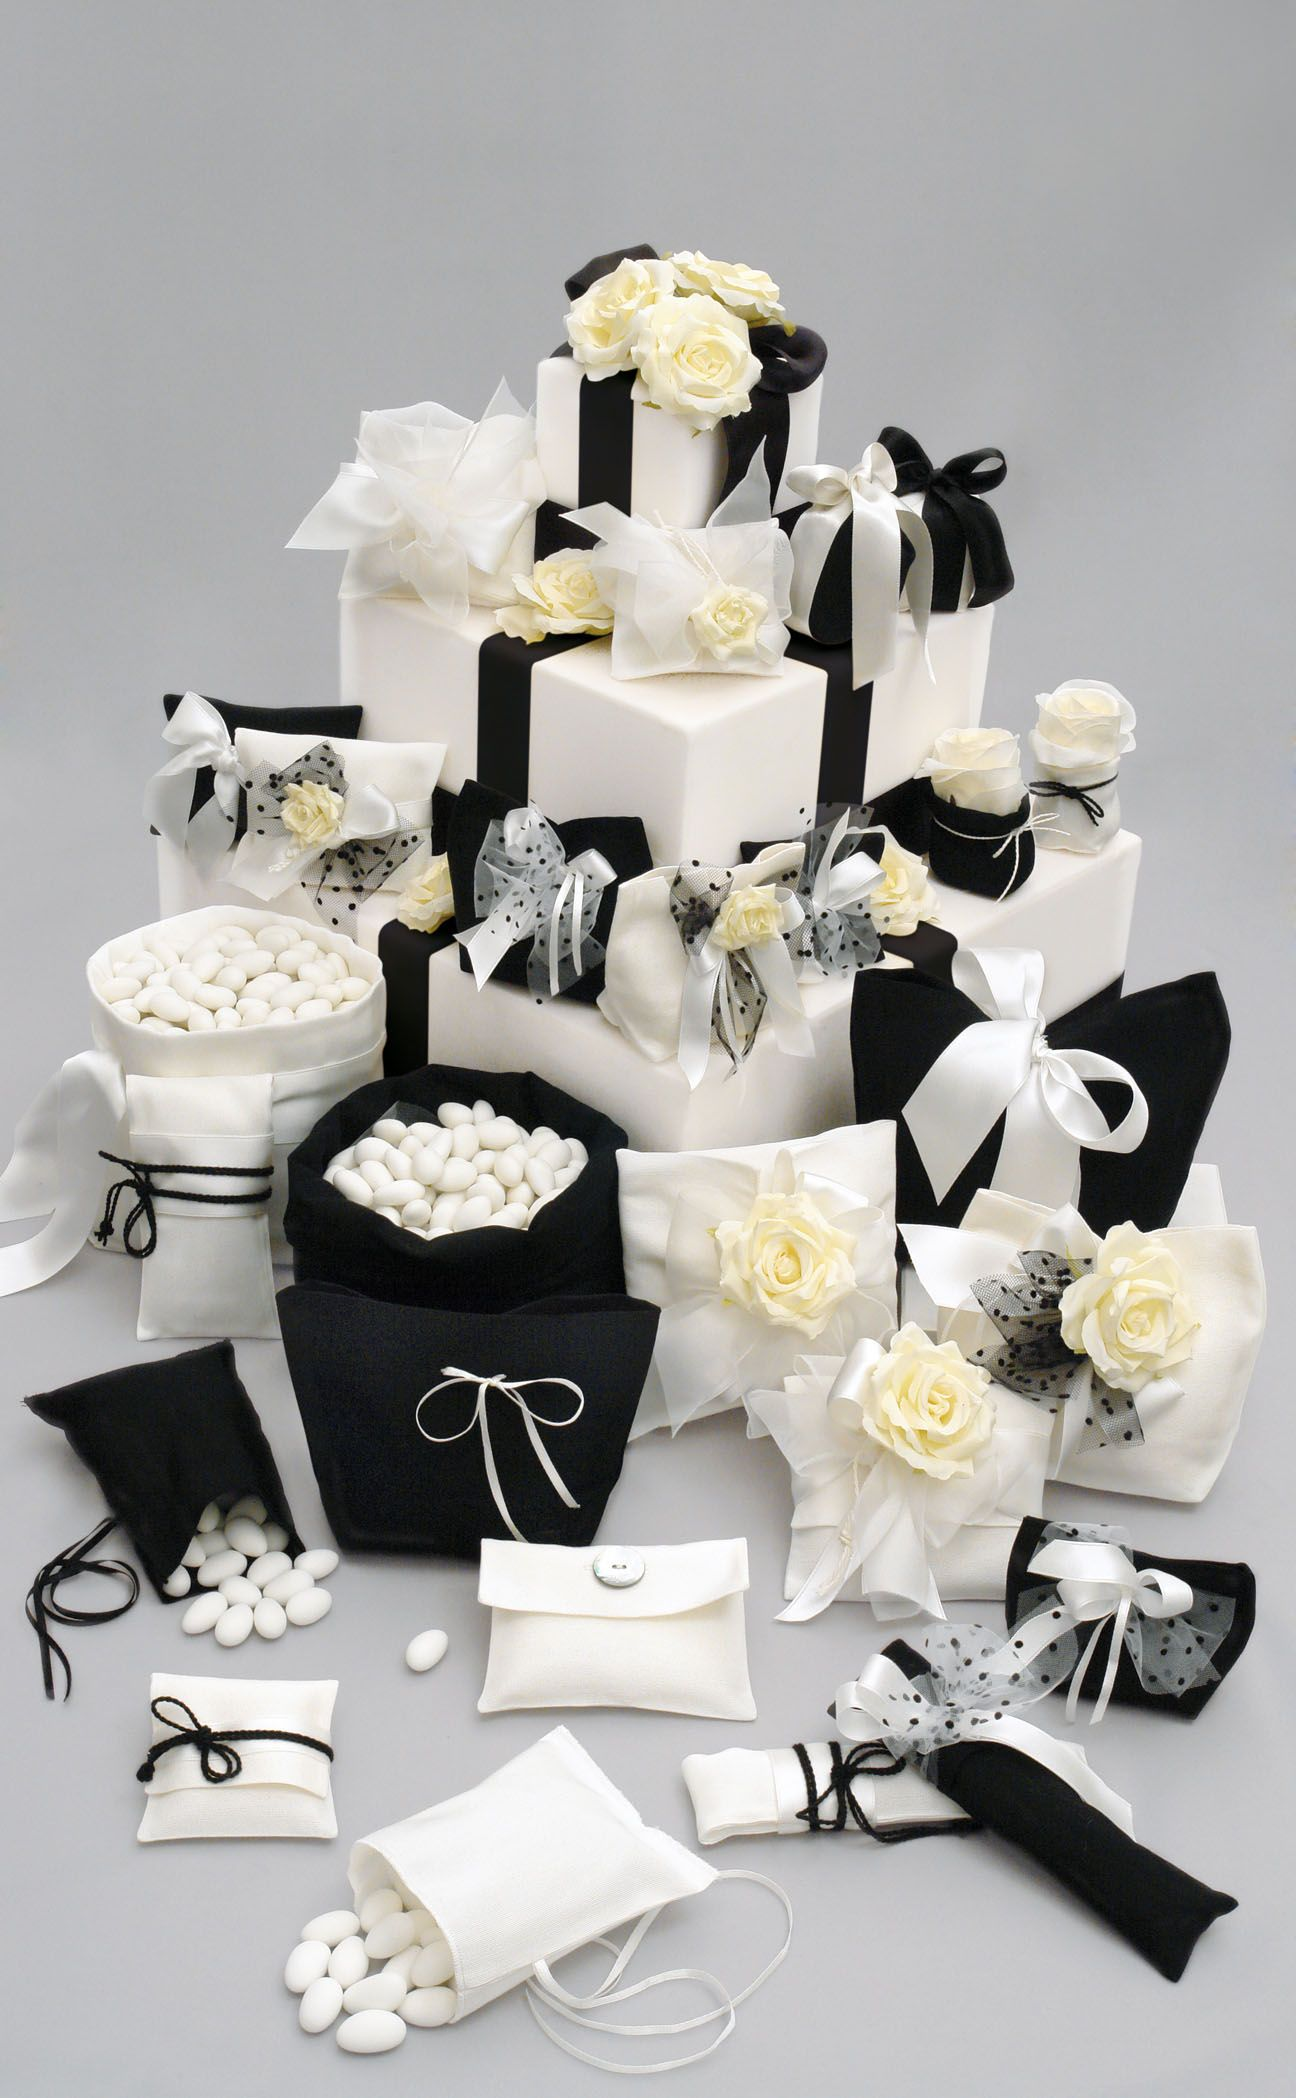 Black and White Wedding favors | Wedding stuff | Pinterest | Favours ...